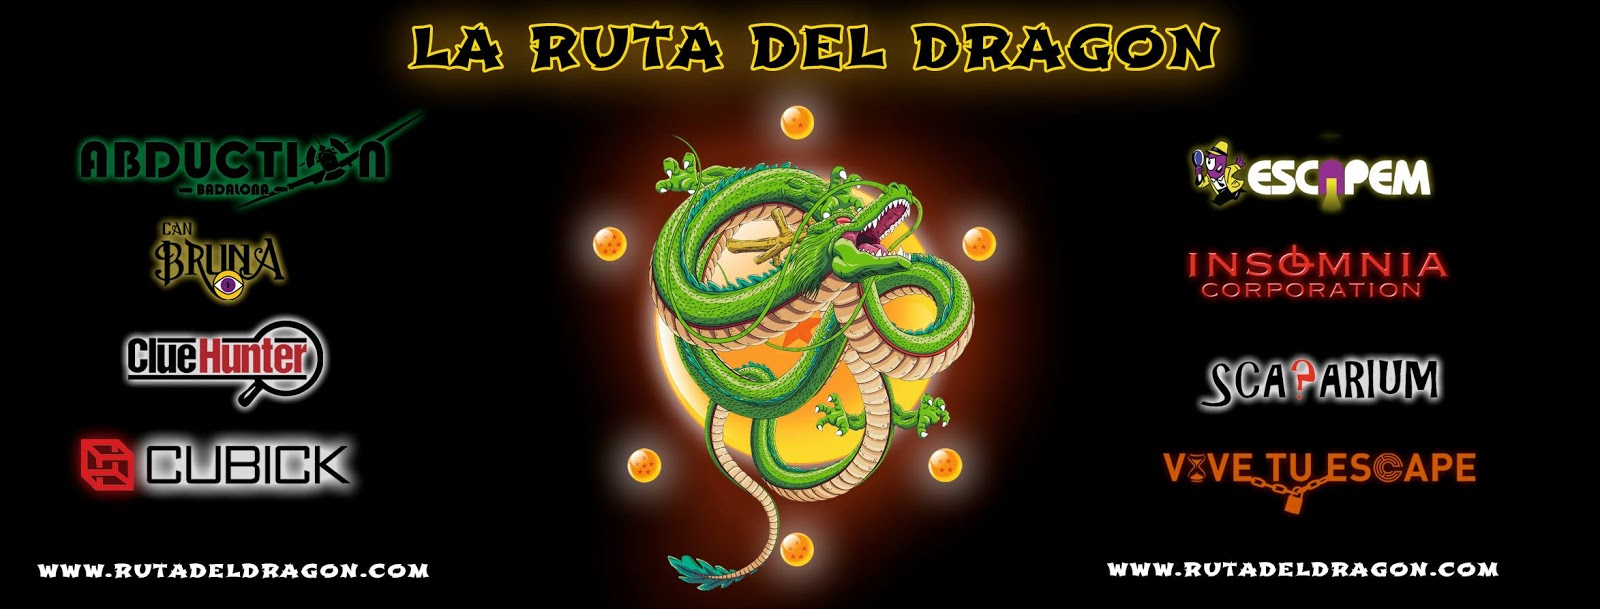 Ruta de Escape Room: la ruta del Dragón